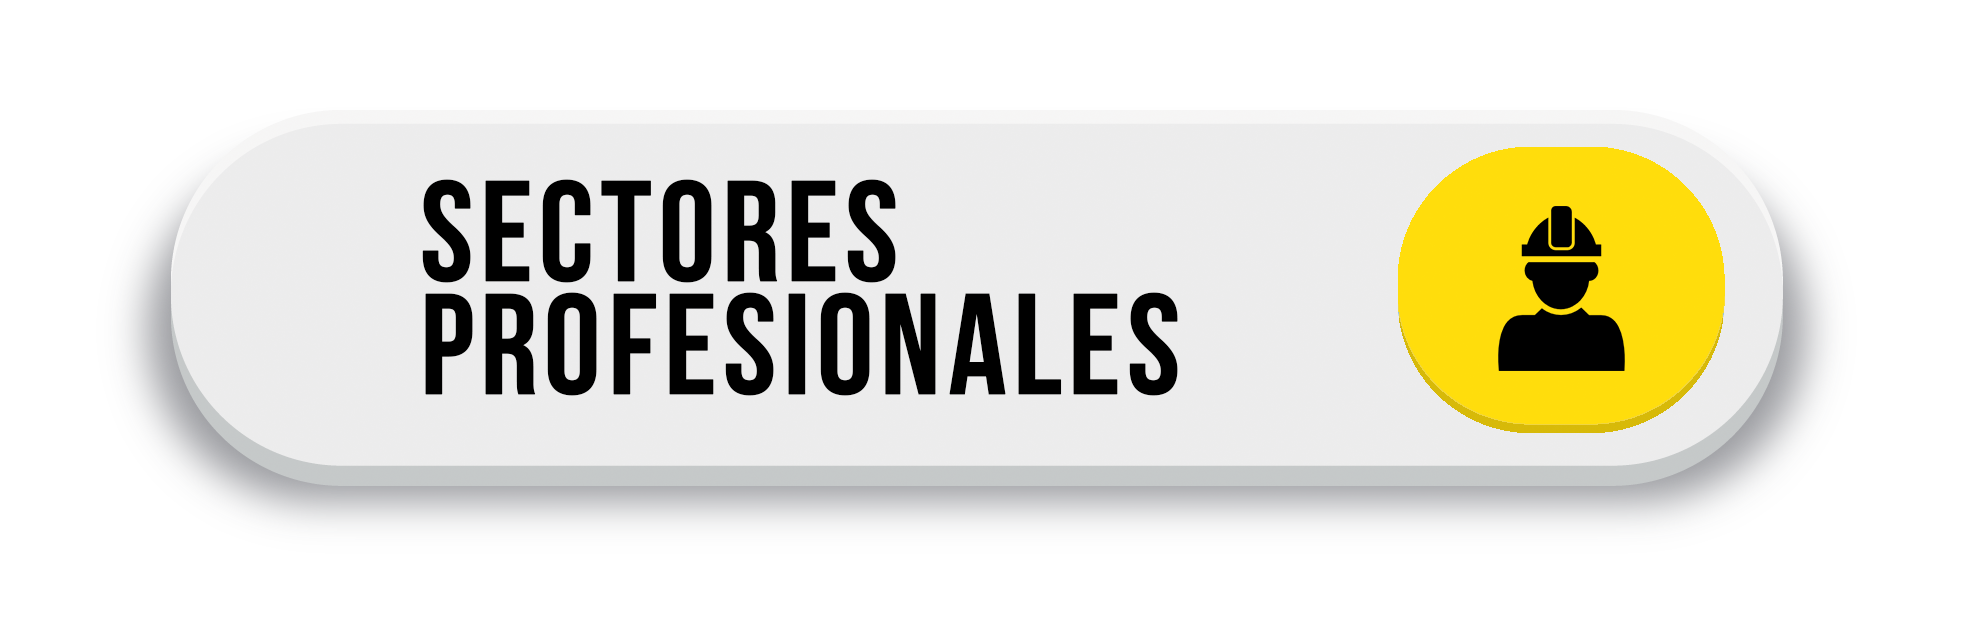 Sectores profesionales